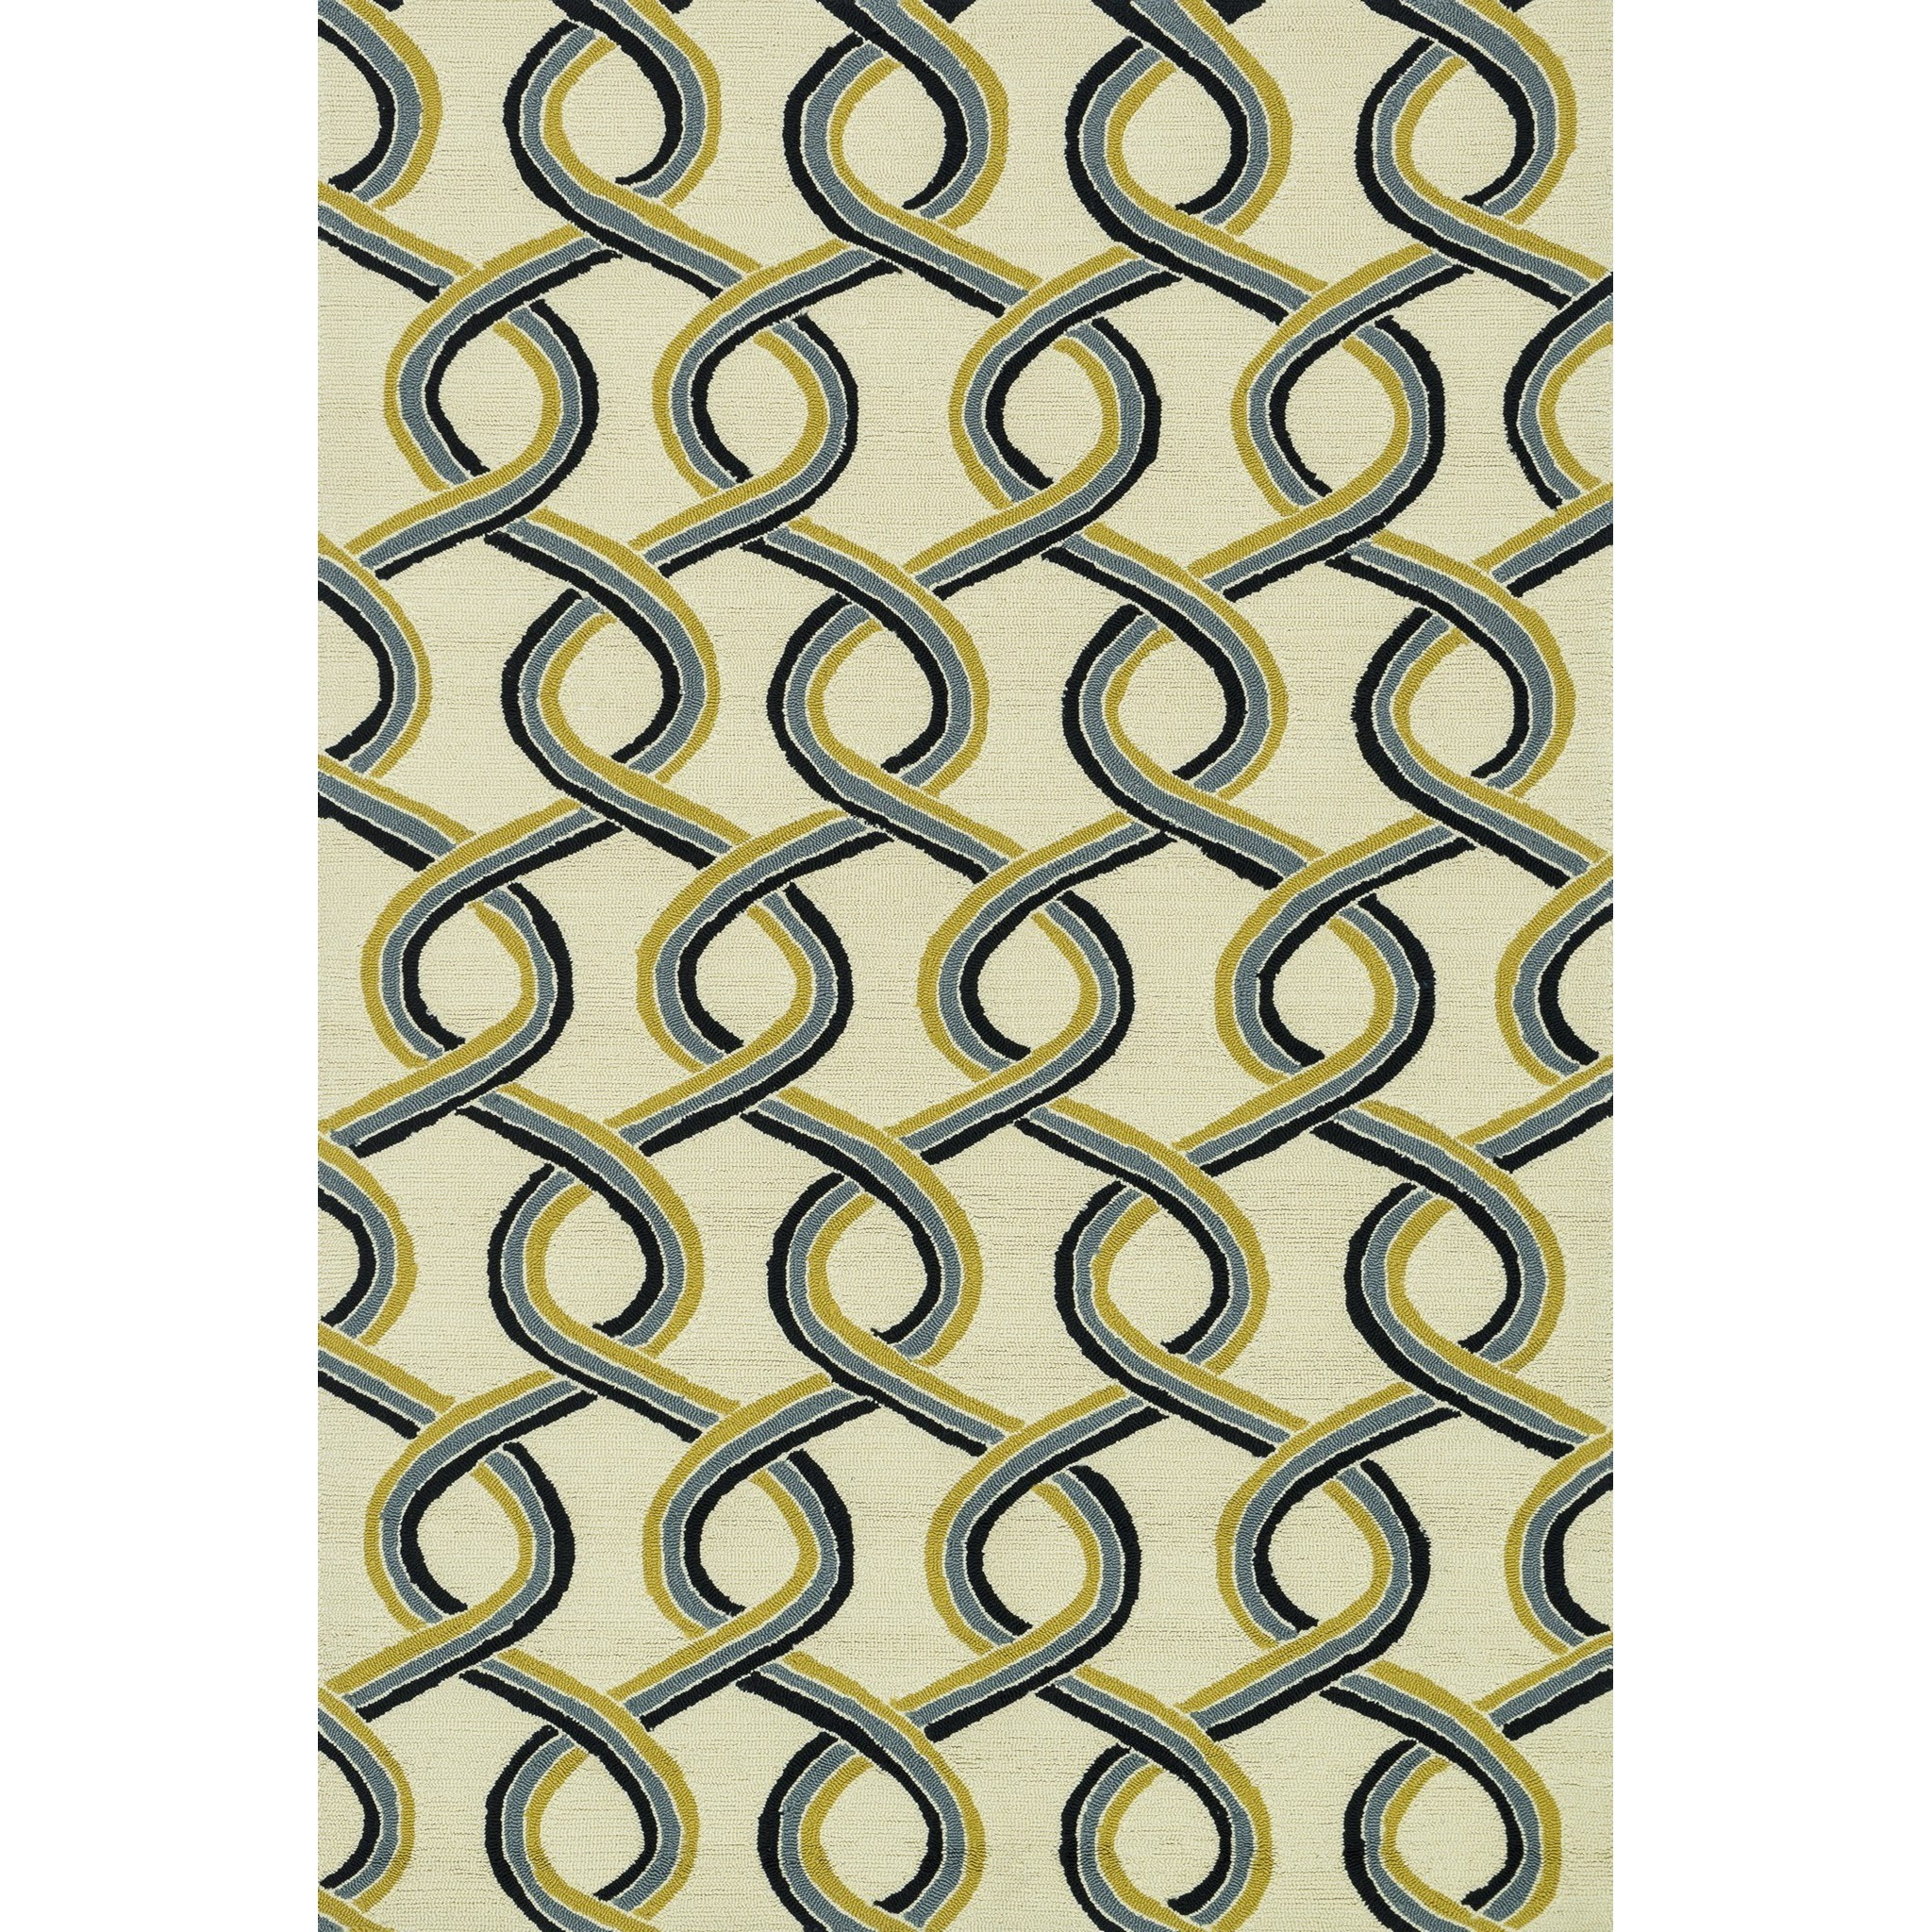 "Venice Beach 7'-6"" x 9'-6"" Area Rug by Loloi Rugs at Pedigo Furniture"